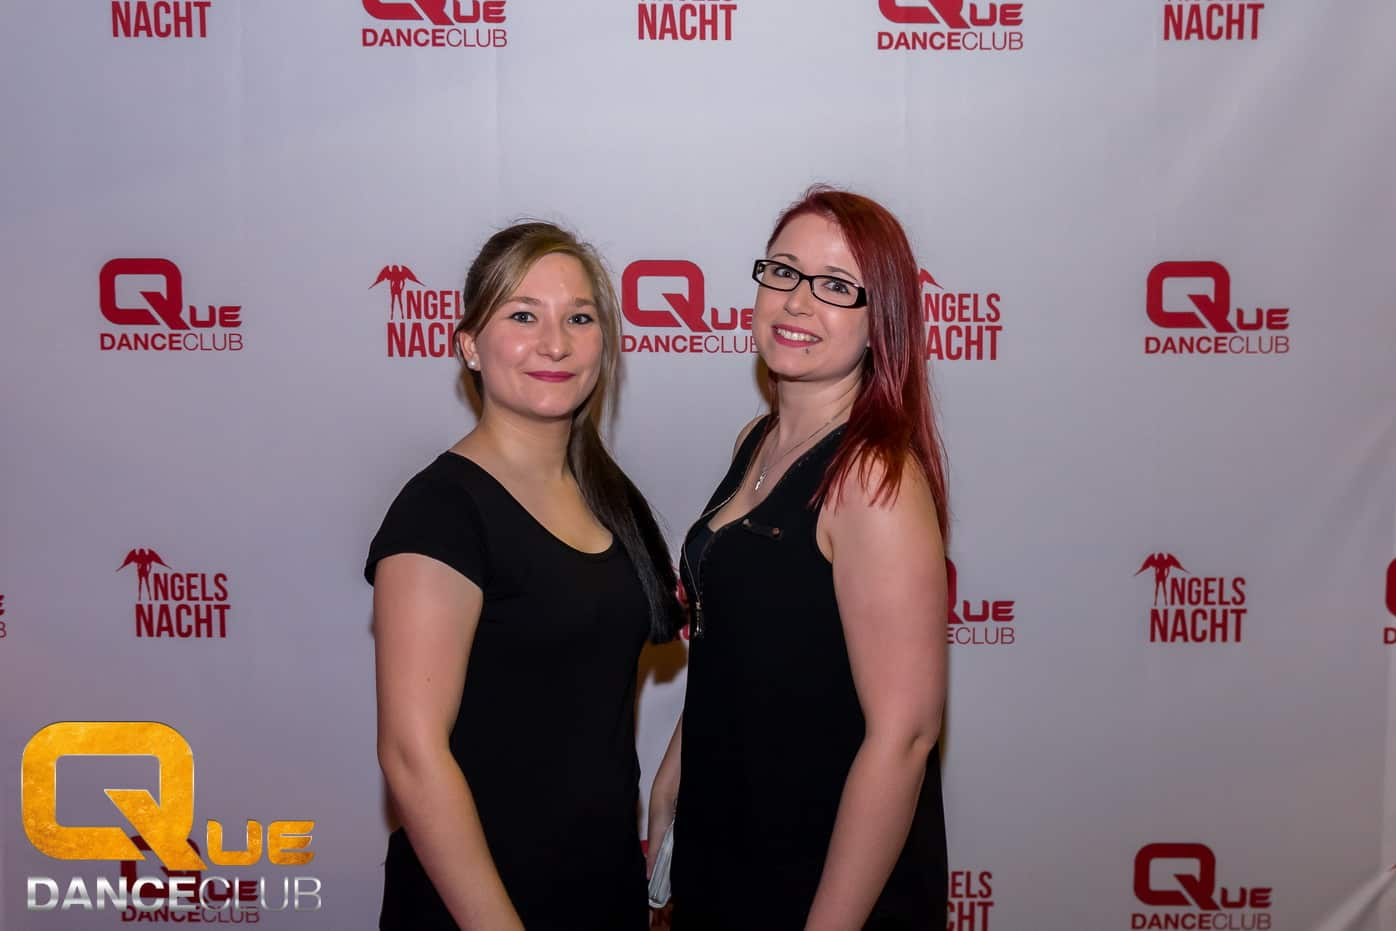 2018_12_25_Que_Danceclub_Engels_Nacht_2018_Nightlife_Scene_Timo_004